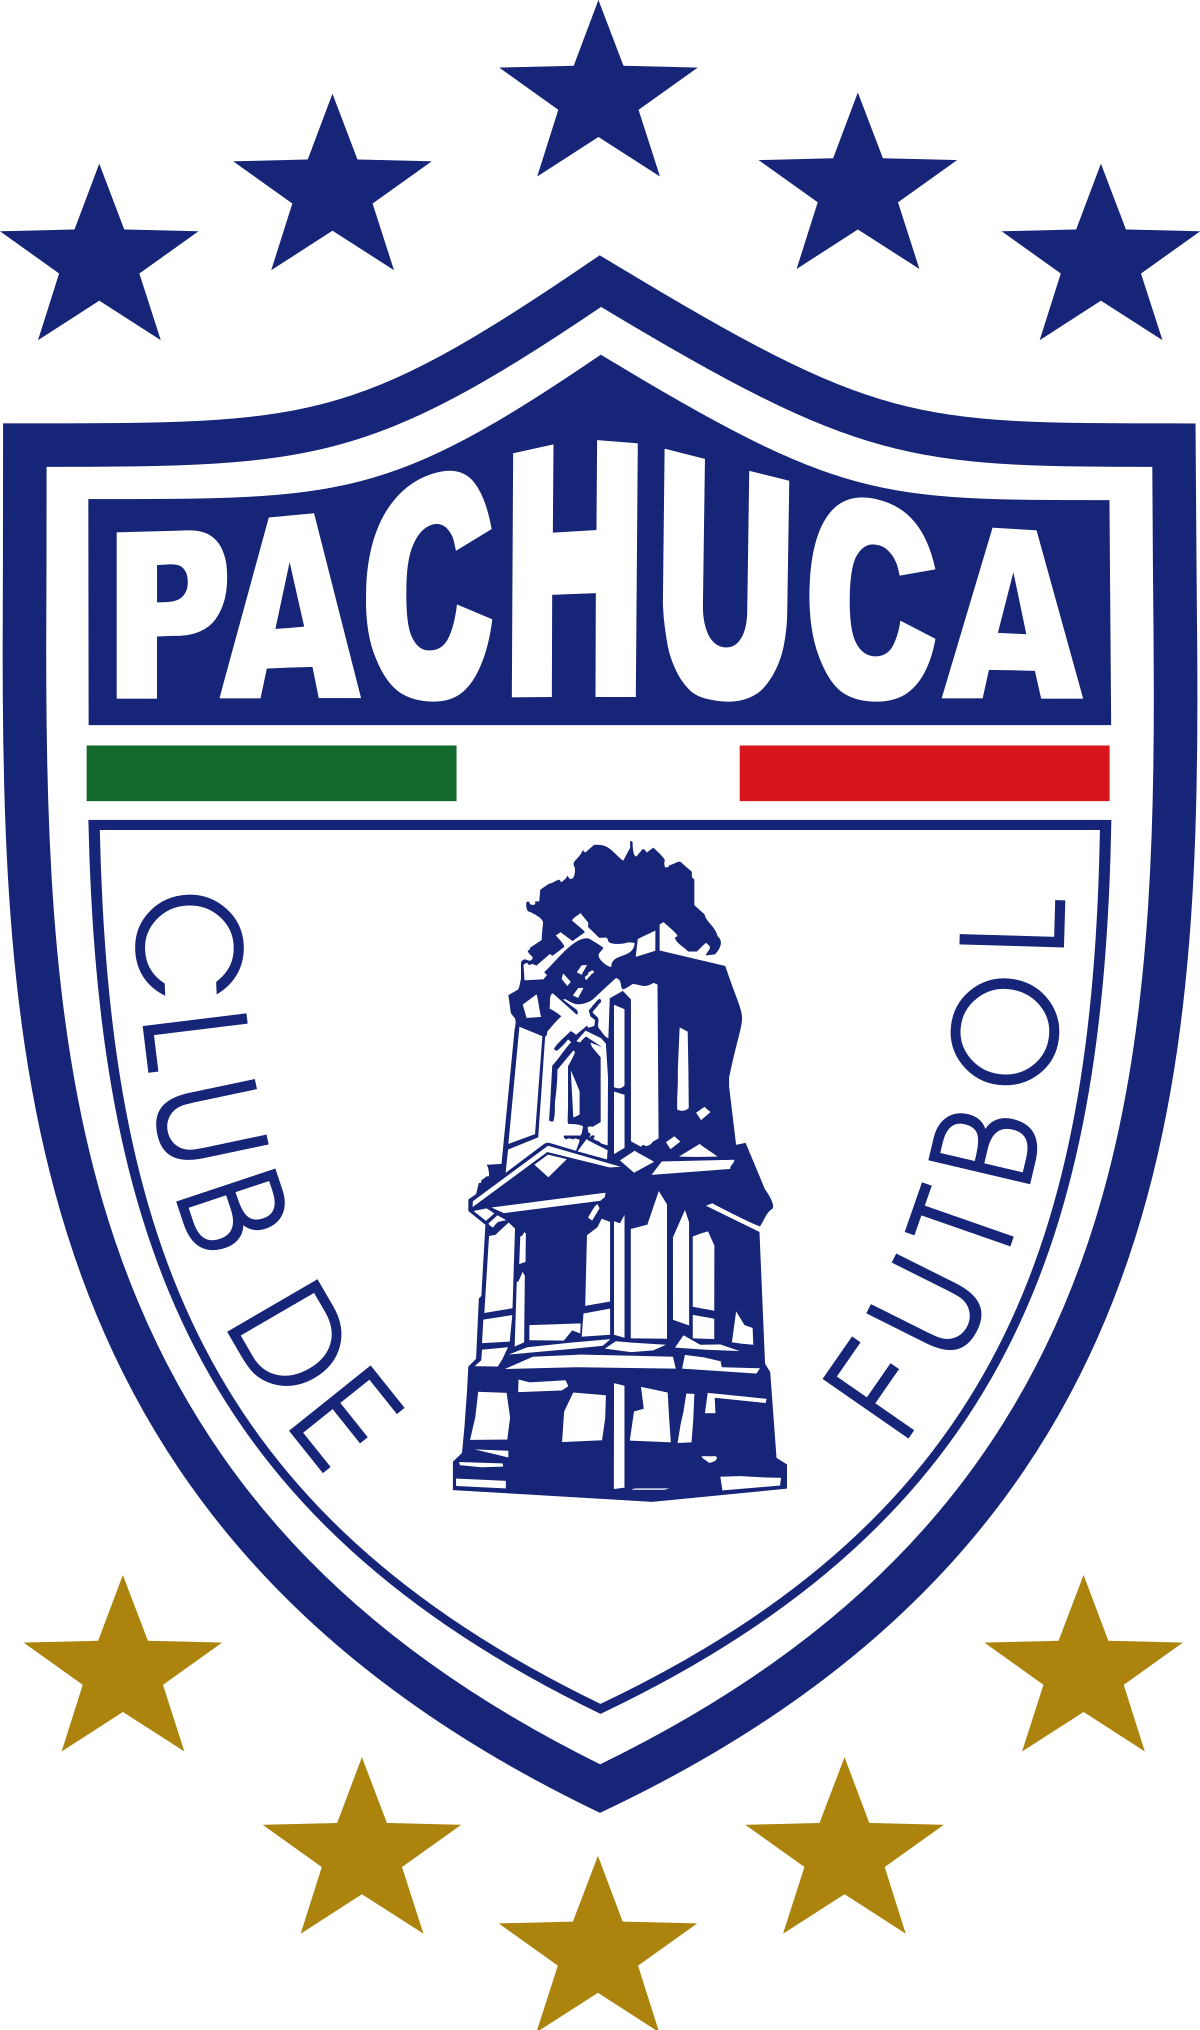 Pachuca drawing pencil. Oli bongers obongers on